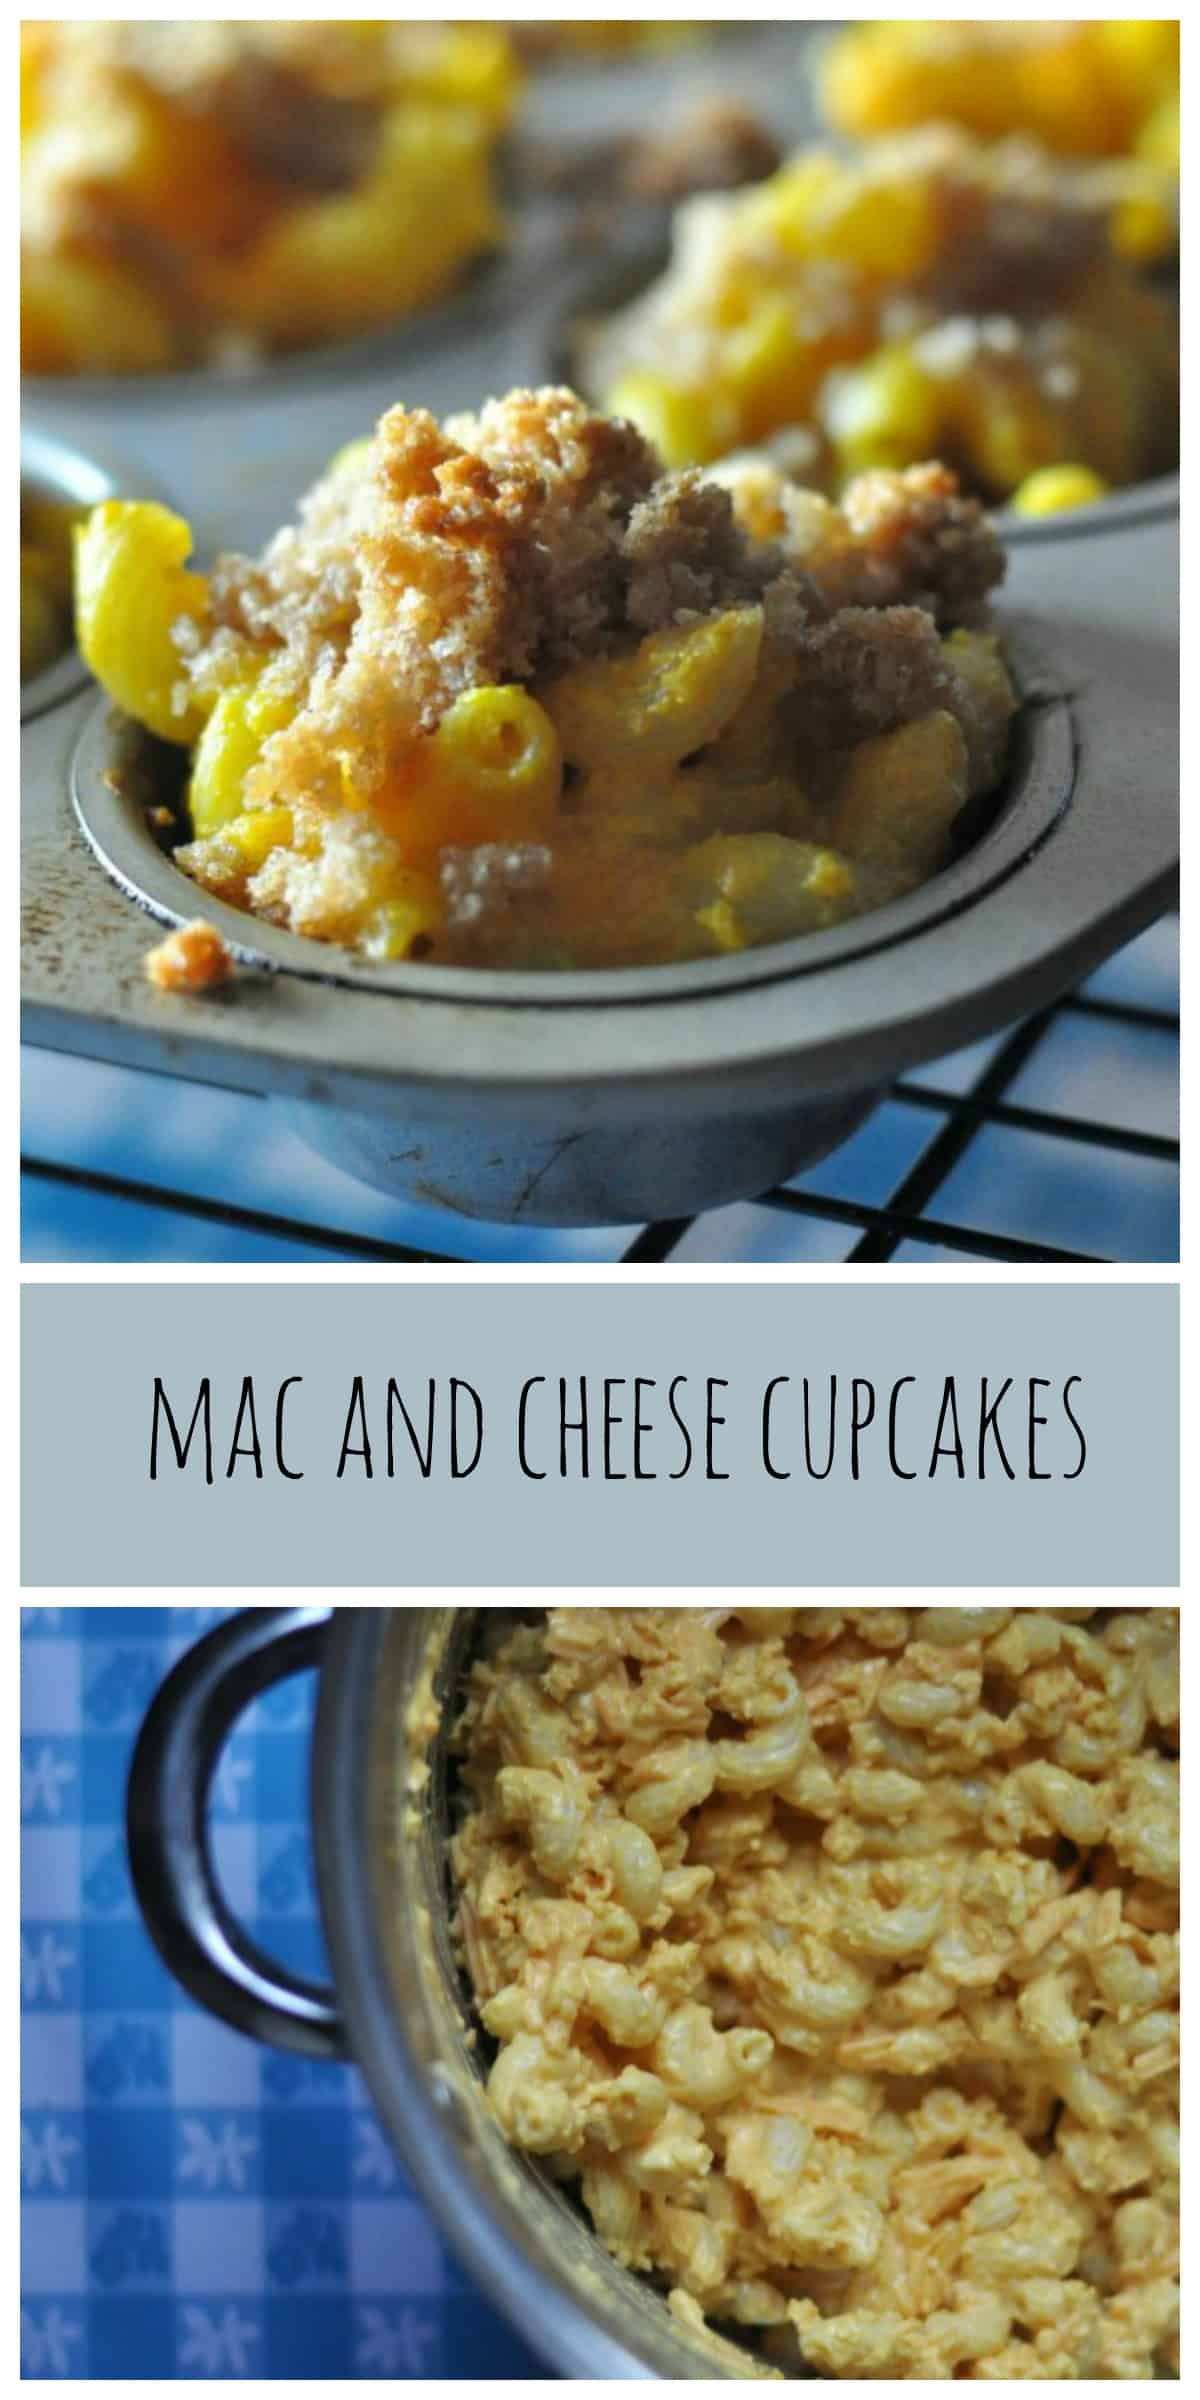 Super easy Mac and Cheese cupcakes baked right in your oven for a simple family meal everyone will love.